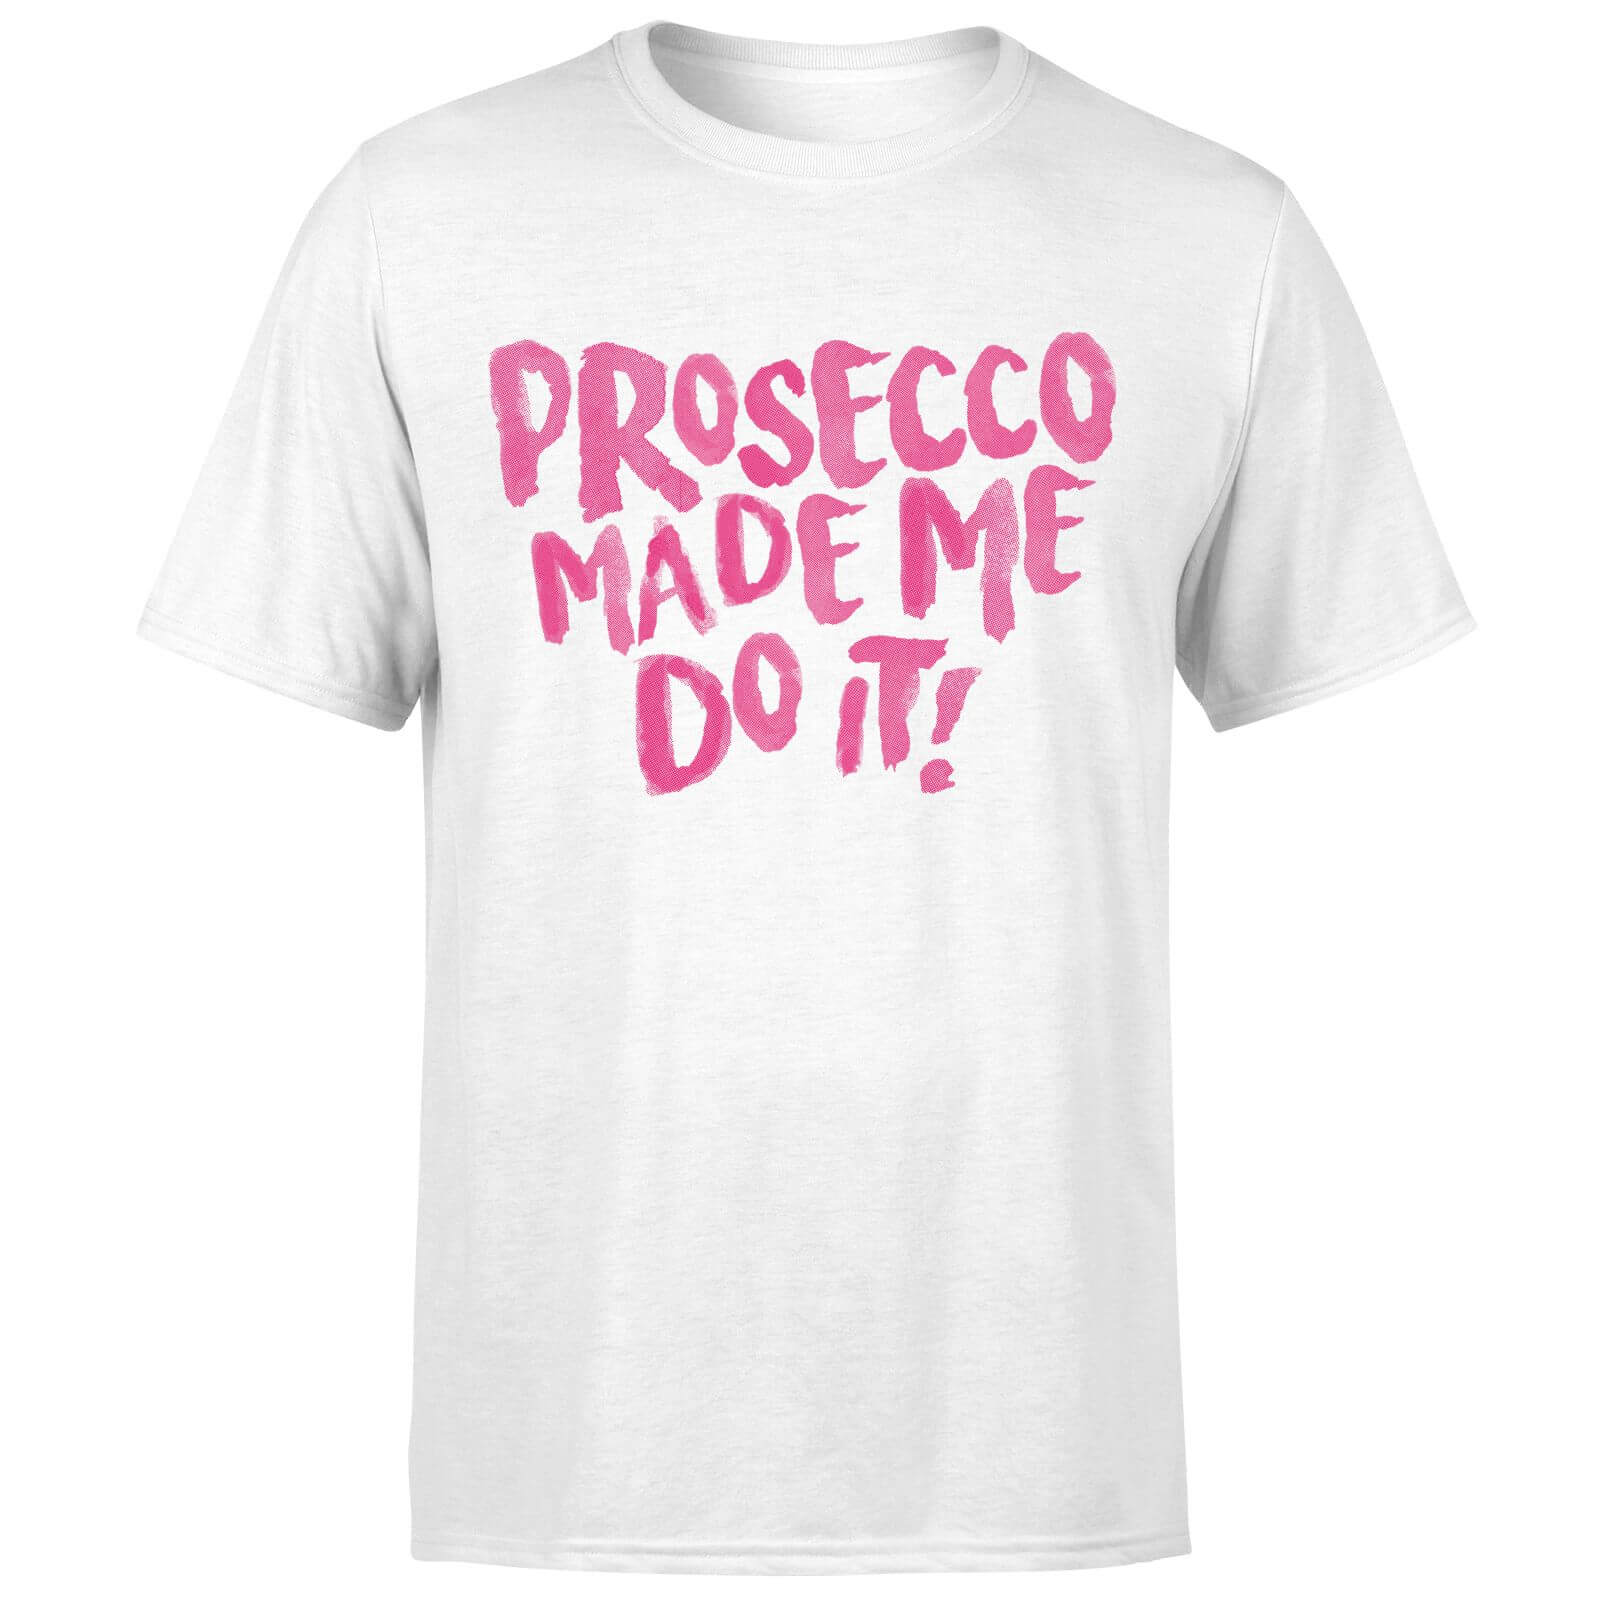 Prosecco Made Me Do it T-Shirt - White